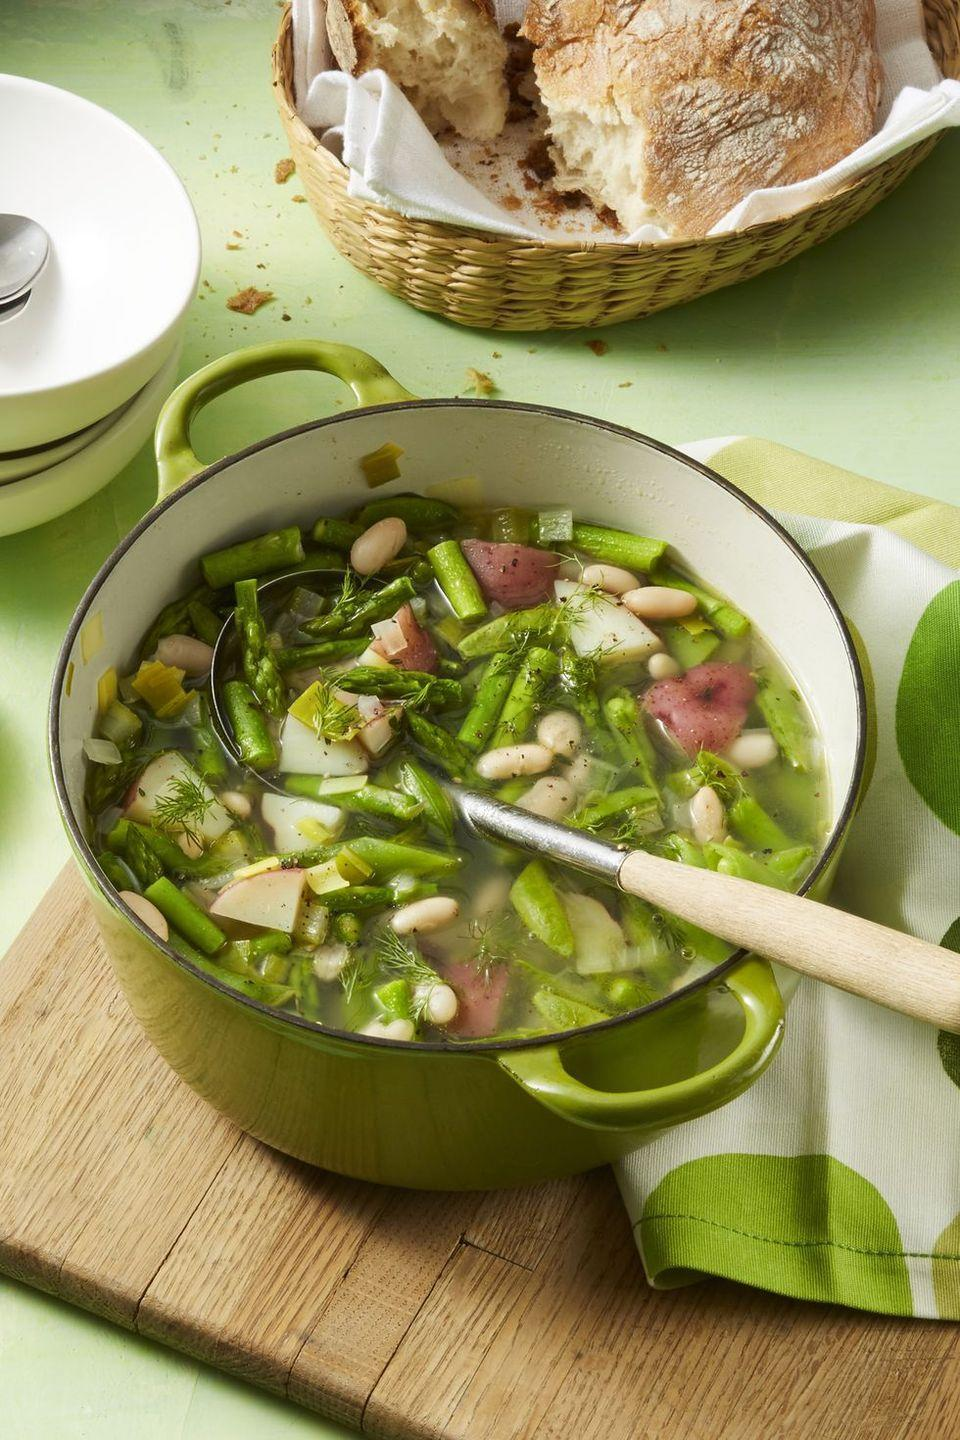 """<p>Cozy up this winter with a bowl of this easy, flavorful soup that features all of the greens you're looking for: celery, asparagus, sugar snap peas, and leeks. </p><p><a href=""""https://www.womansday.com/food-recipes/food-drinks/a19779857/spring-minestrone-soup-recipe/"""" rel=""""nofollow noopener"""" target=""""_blank"""" data-ylk=""""slk:Get the Minestrone Soup recipe."""" class=""""link rapid-noclick-resp""""><em>Get the Minestrone Soup recipe.</em></a> </p>"""